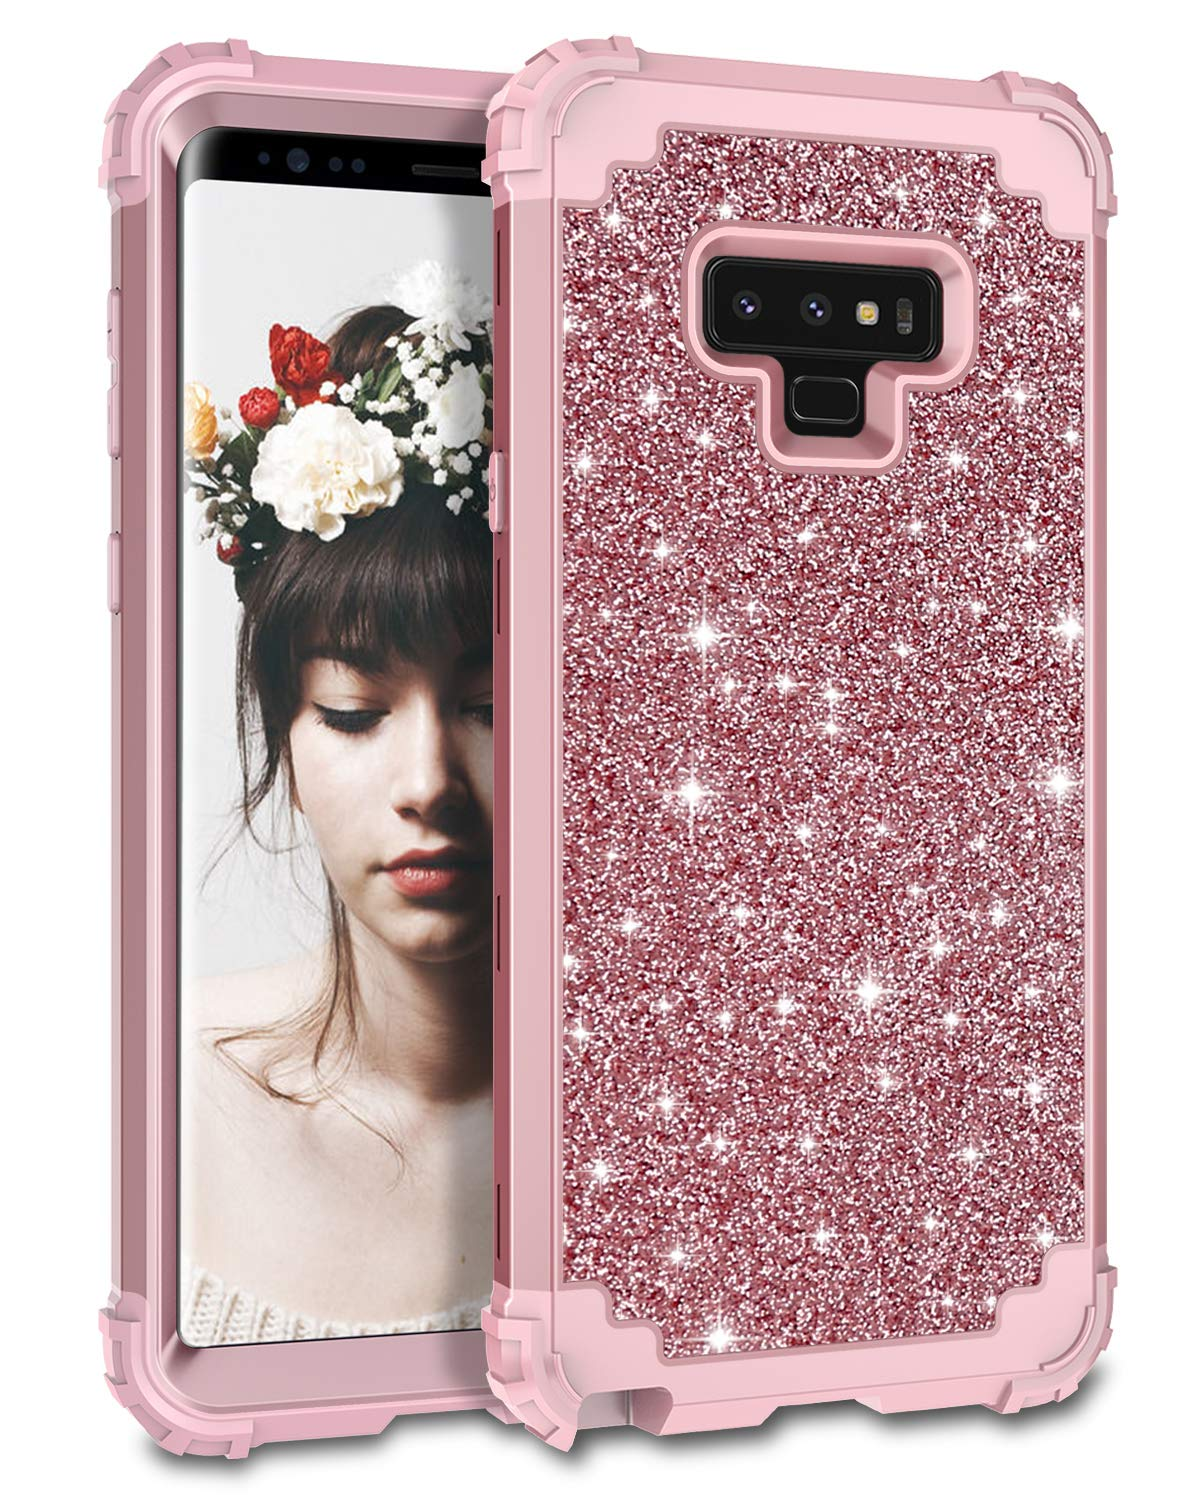 cf02a071ed2 Lontect Compatible Galaxy Note 9 Case Luxury Glitter Sparkle Bling Heavy  Duty Hybrid Sturdy Armor High Impact Shockproof Protective Cover Case for  Samsung ...